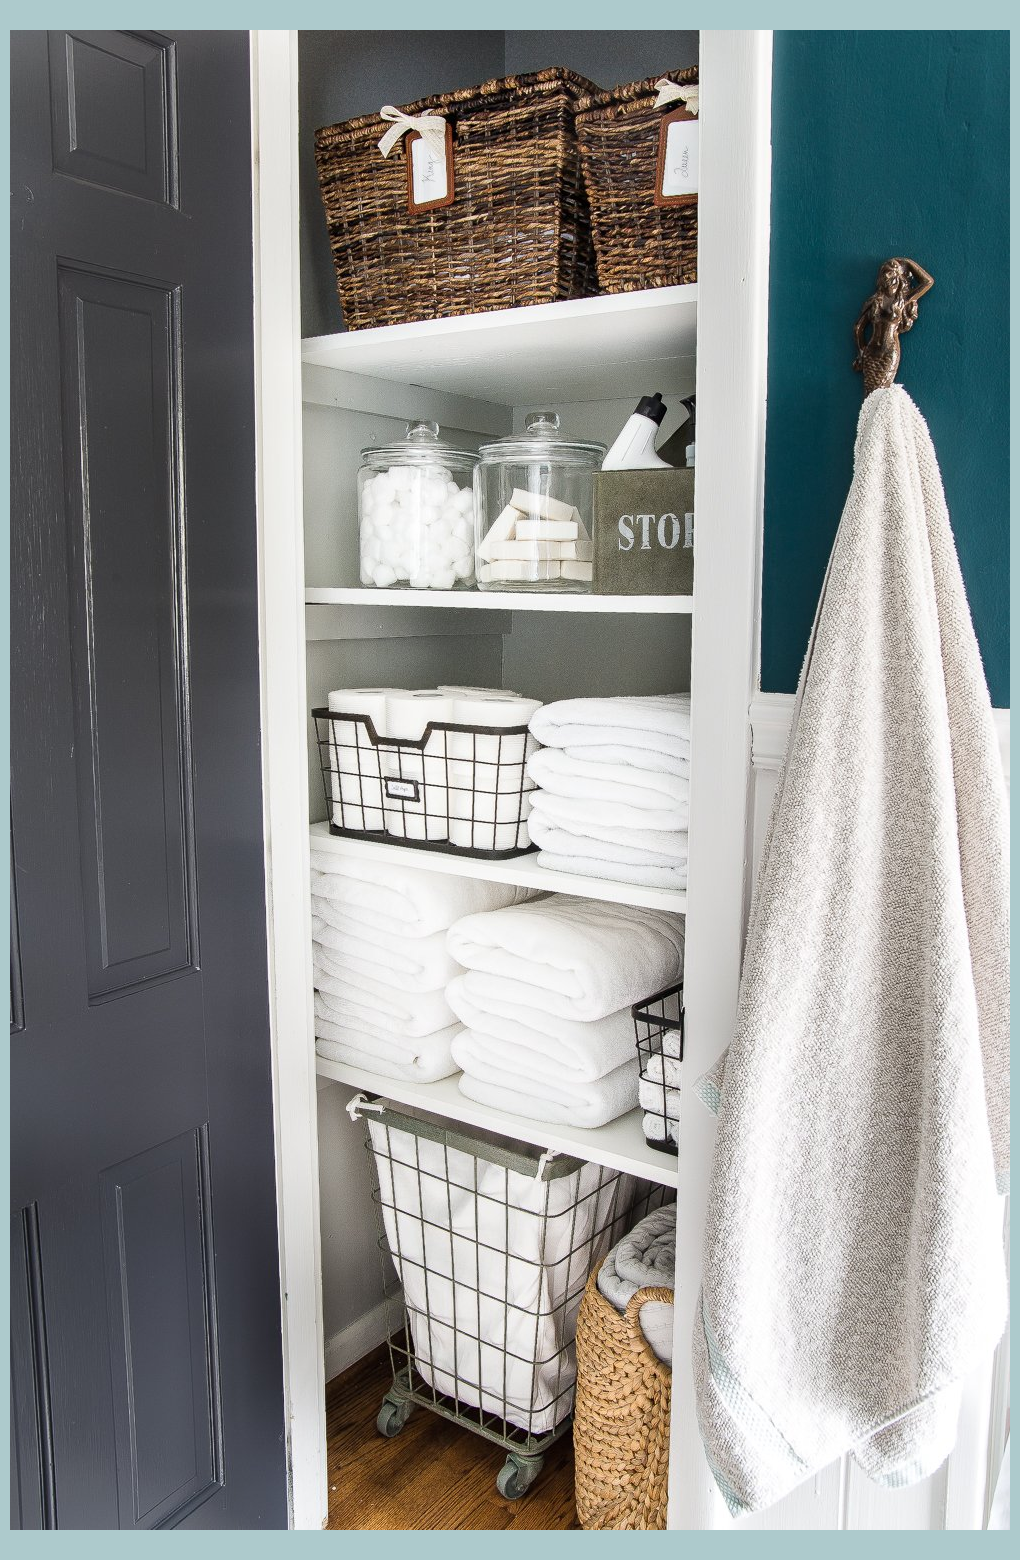 Pinterest In 2020 With Images Bathroom Linen Closet Closet